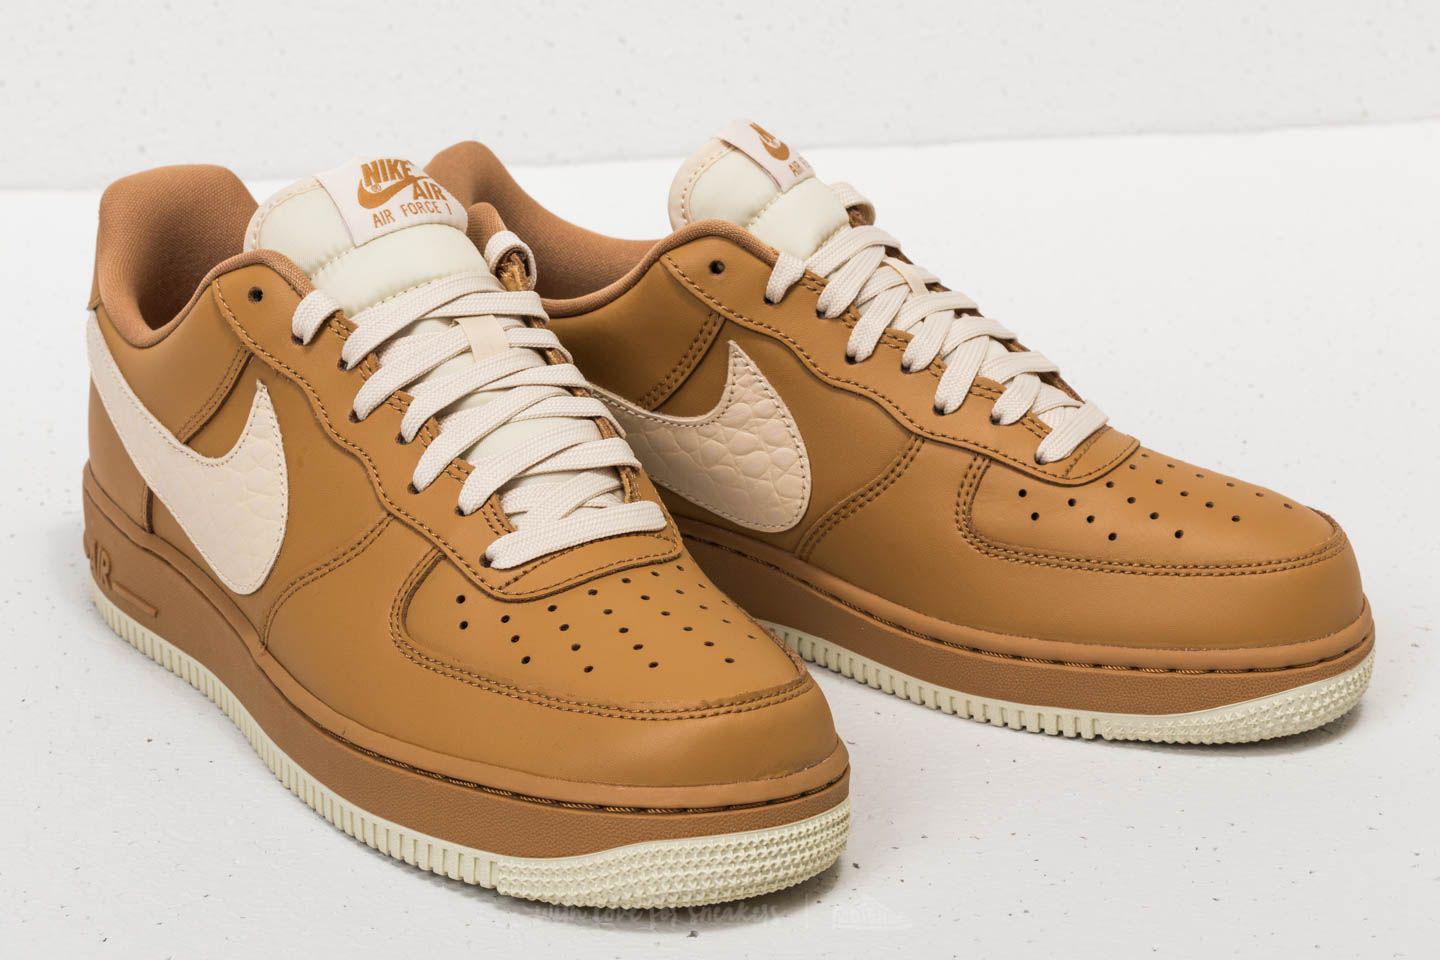 Nike Leather Air Force 1 '07 Lv8